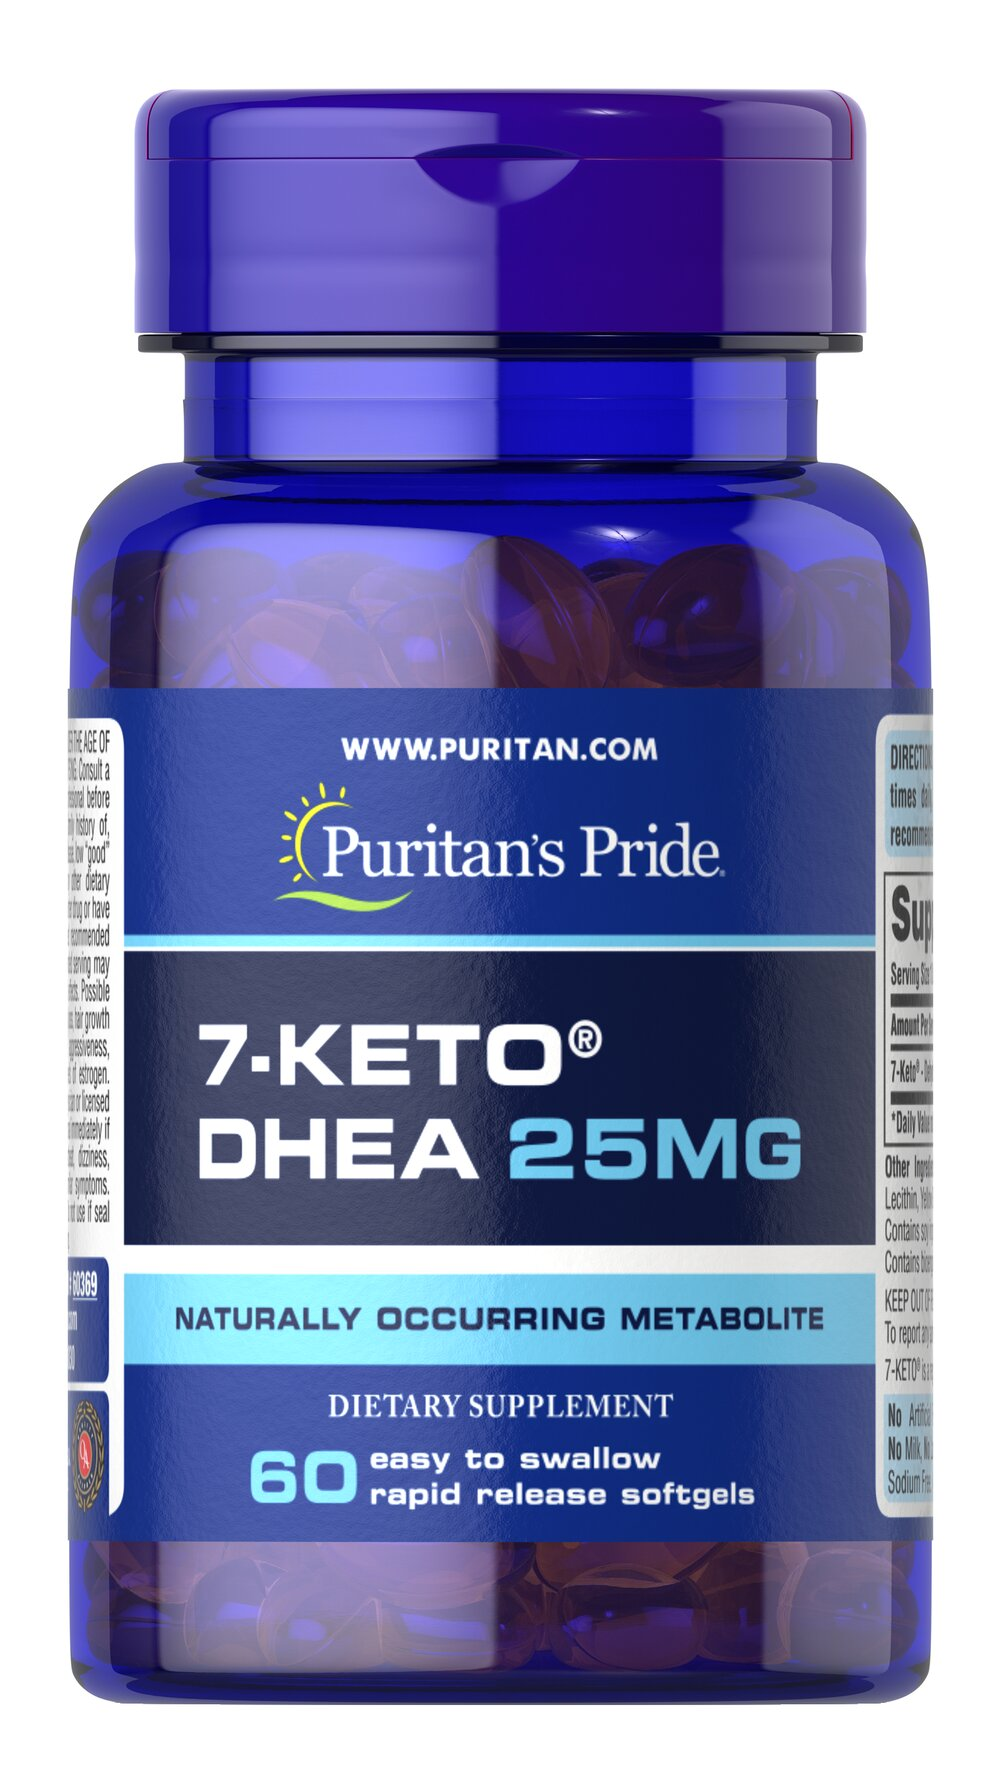 7-Keto™ DHEA 25 mg <p>DHEA levels can decline with age, and 7-Keto™ is a naturally occurring metabolite of DHEA. 7-Keto™ gives you what the body naturally produces. Each stimulant-free, caffeine-free softgel contains 25 mg of high quality 7-Keto™ DHEA in softgel form.</p> 60 Softgels 25 mg $21.99